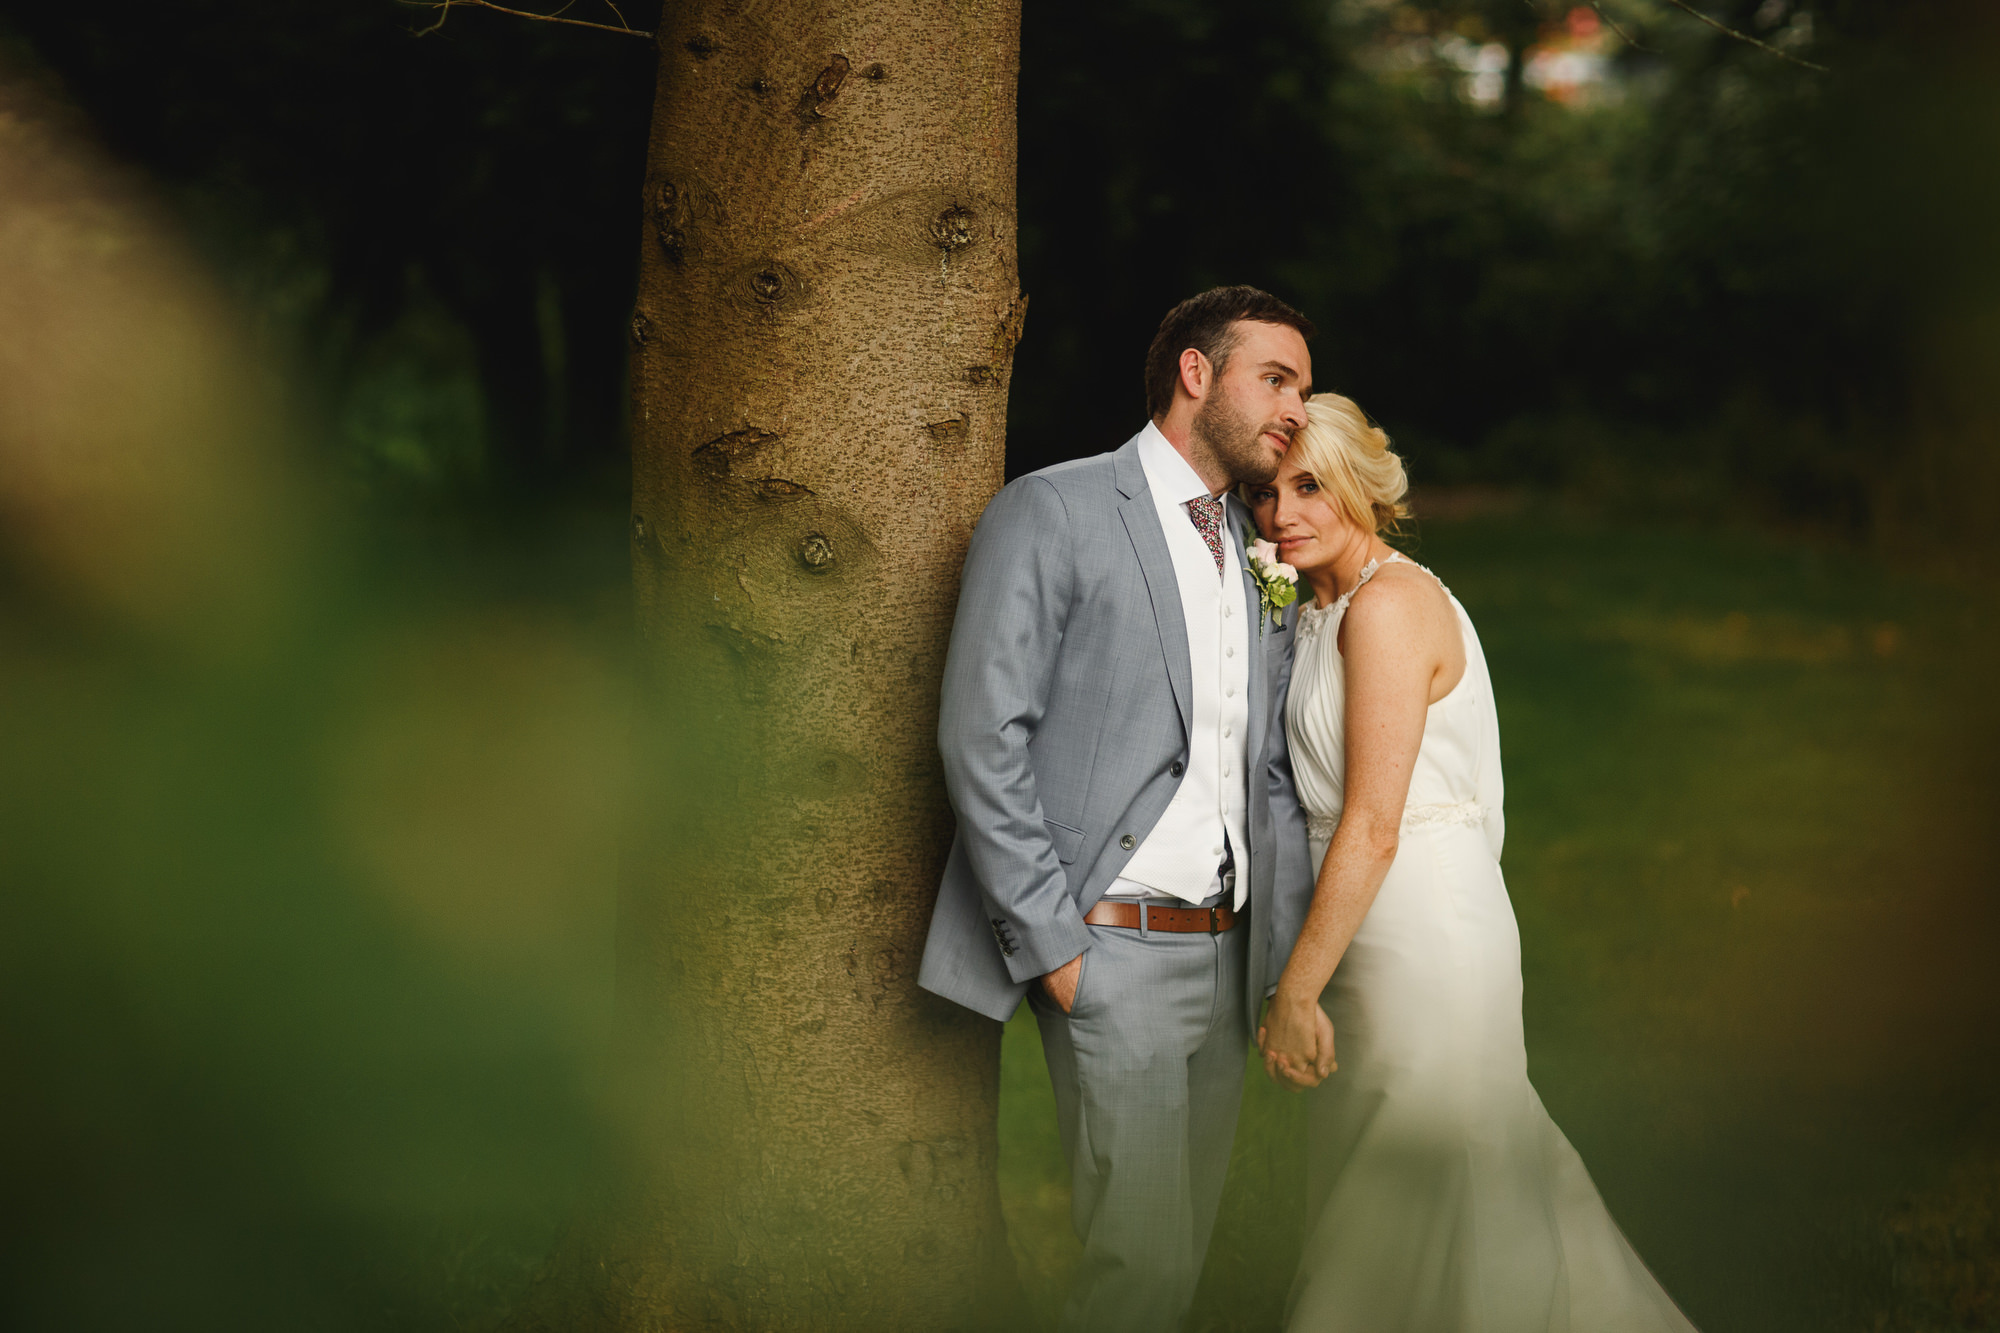 wedding-photography-mitton-hall-73